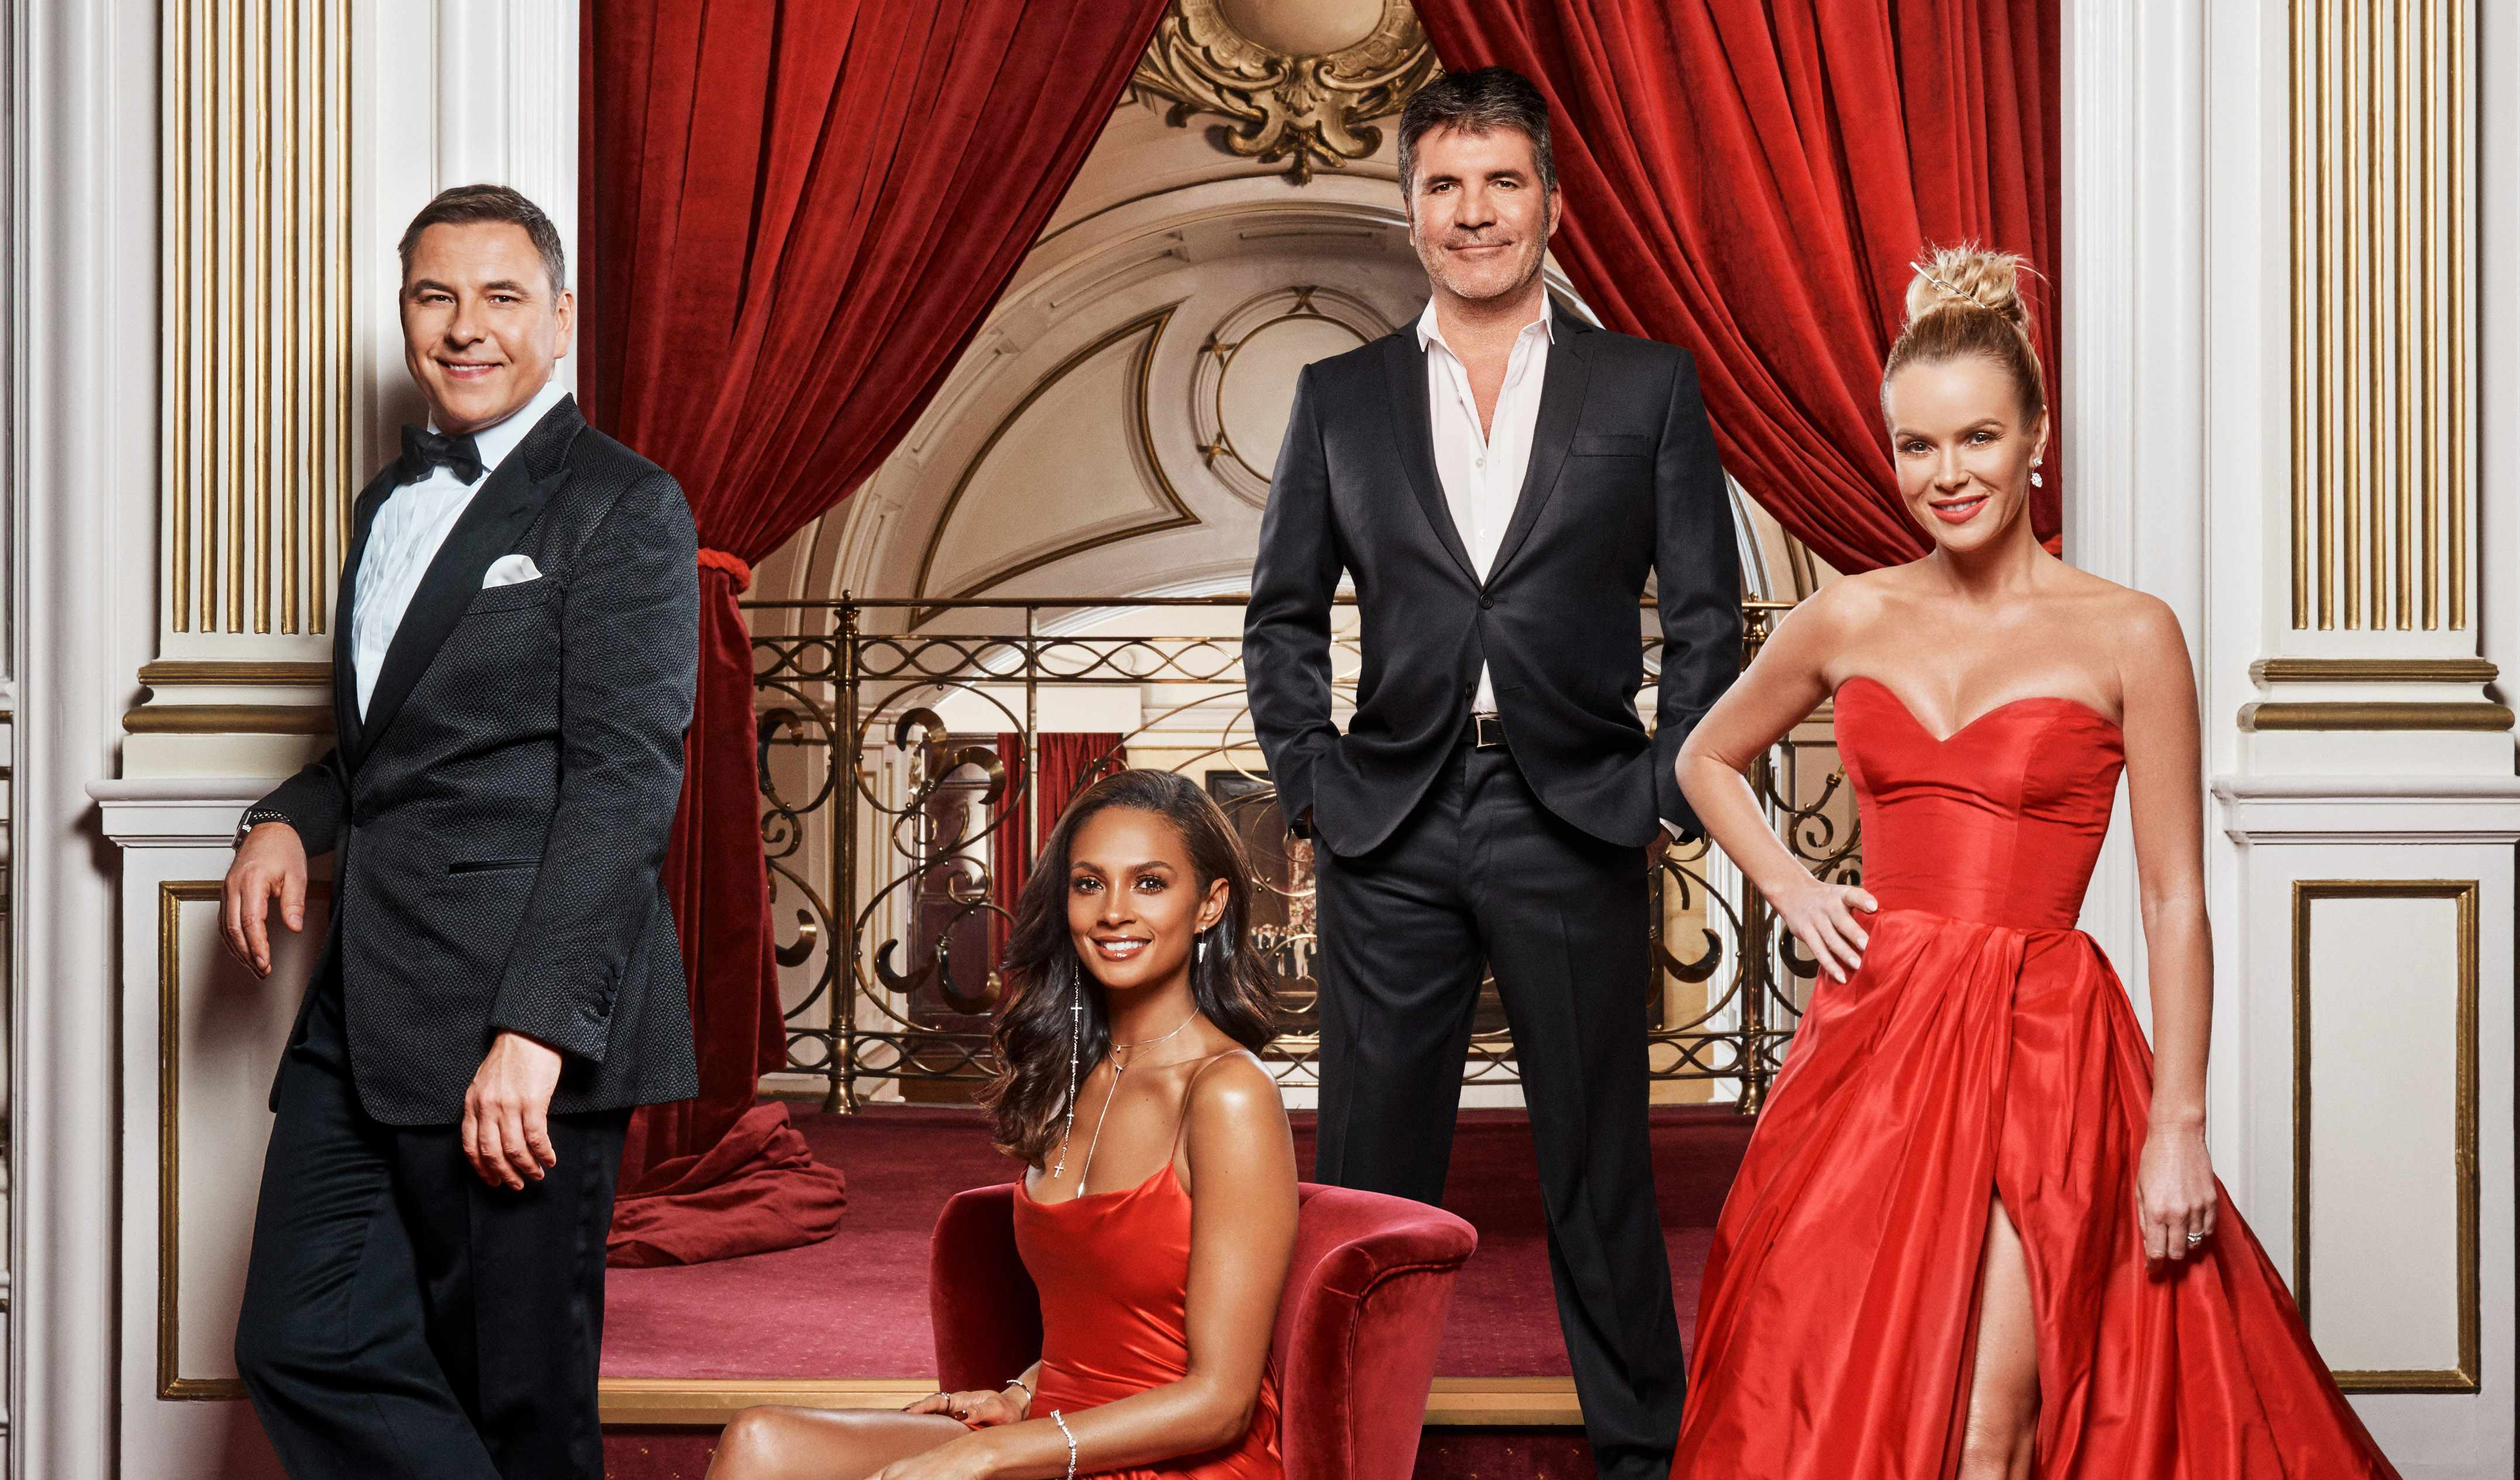 Britain's Got Talent judges 2018: Simon Cowell, David Walliams, Amanda Holden, Alesha Dixon